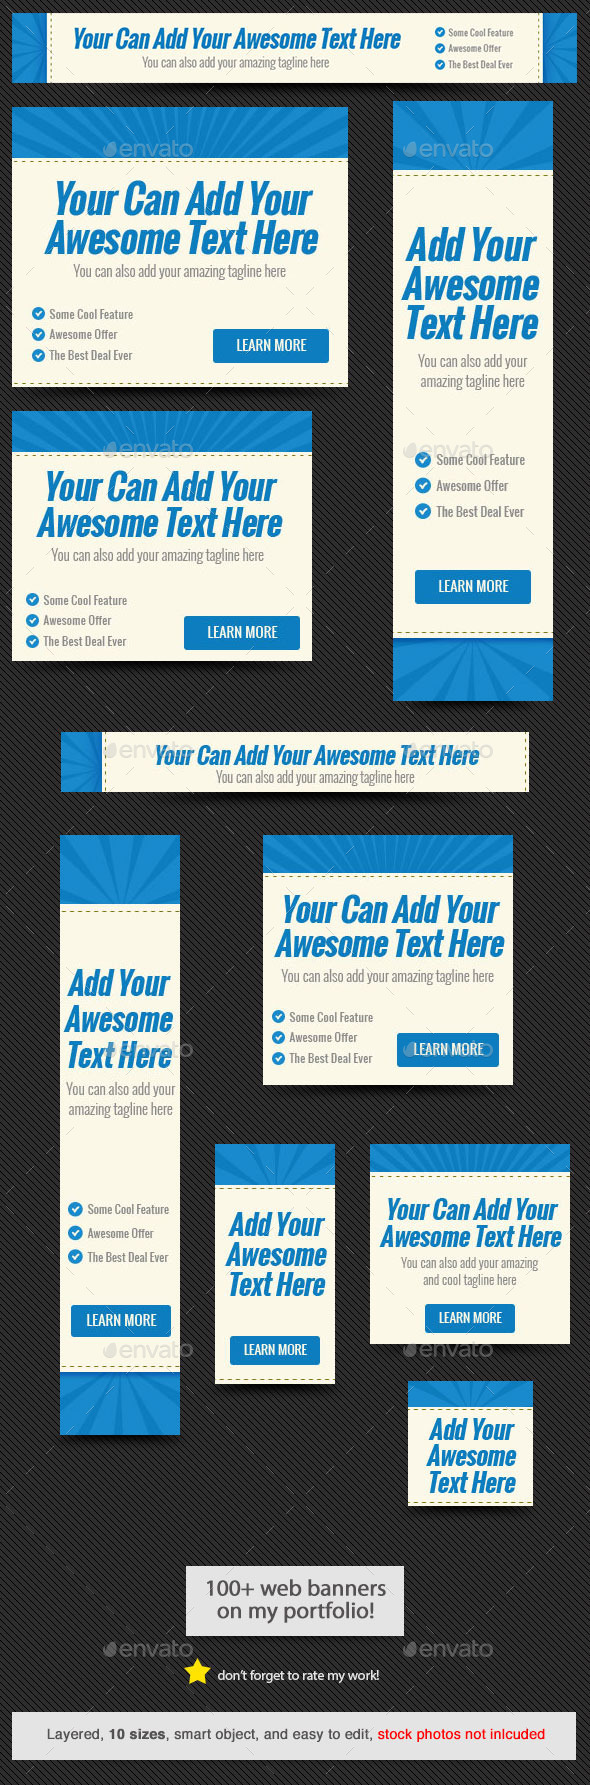 Blue Rays Web Banner Template - Banners & Ads Web Elements